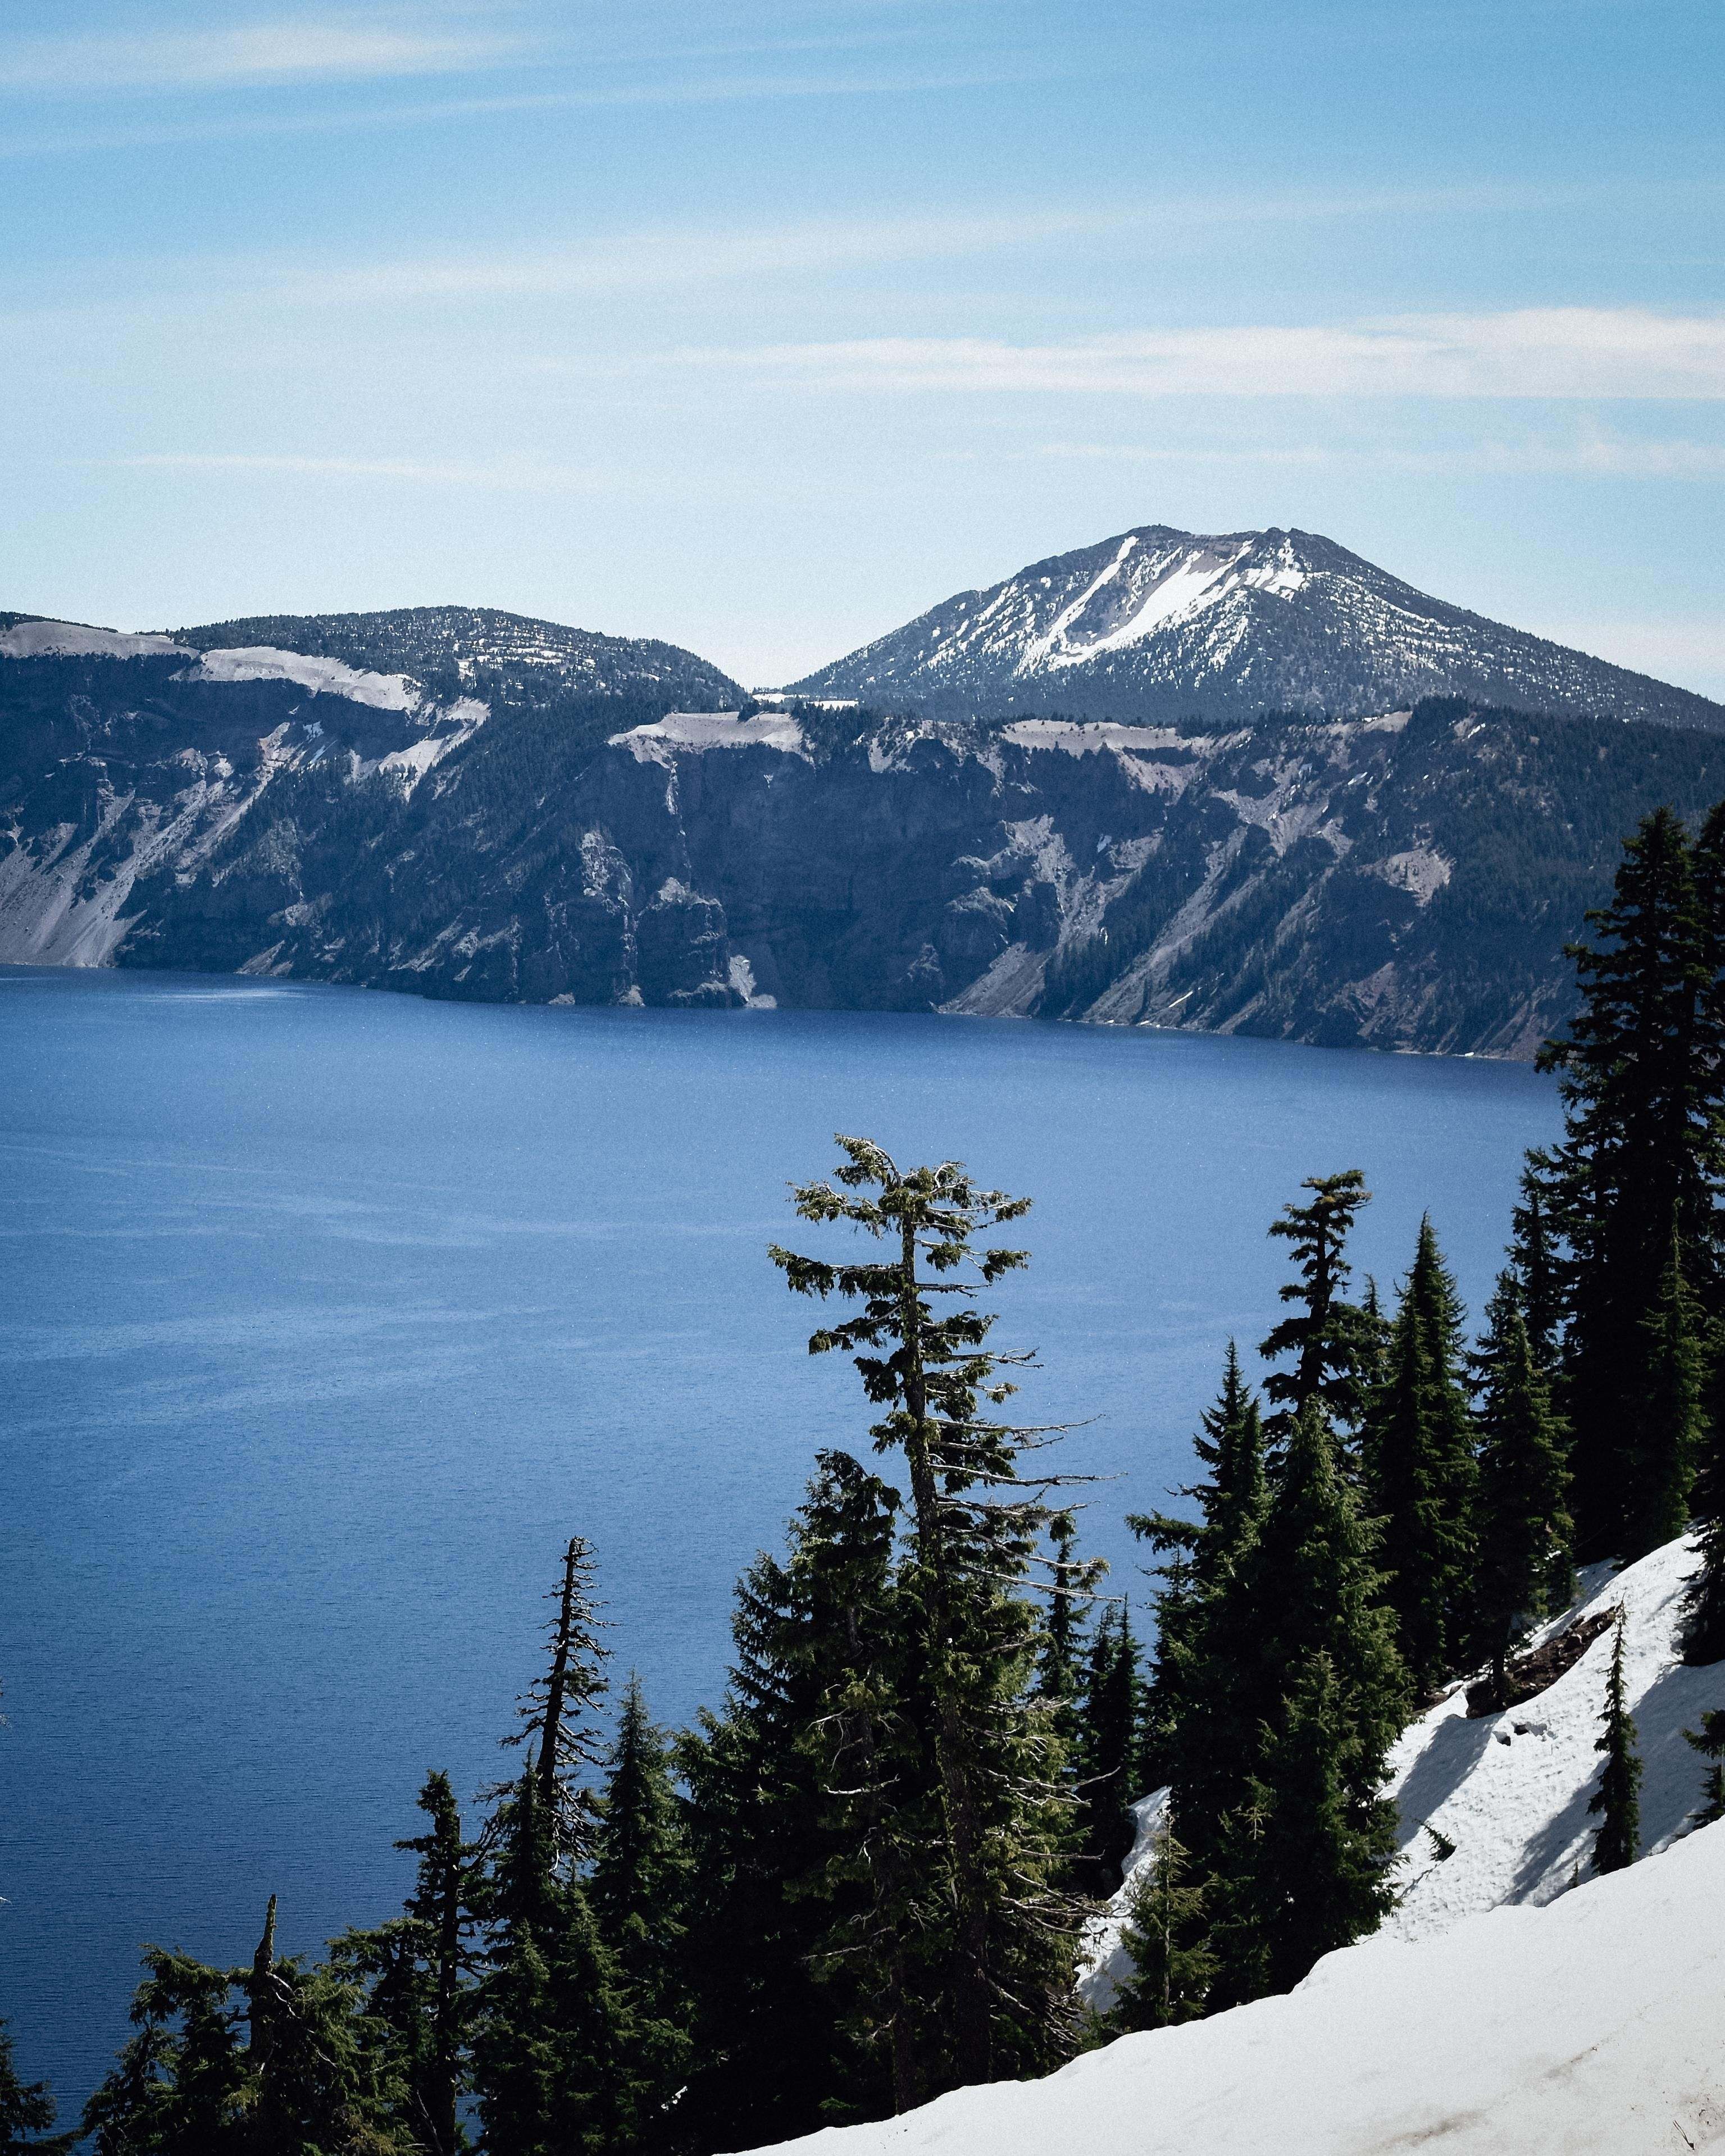 Crater Lake Oregon [OC][3839x3071] #Music #IndieArtist #Chicago #craterlakeoregon Crater Lake Oregon [OC][3839x3071] #Music #IndieArtist #Chicago #craterlakeoregon Crater Lake Oregon [OC][3839x3071] #Music #IndieArtist #Chicago #craterlakeoregon Crater Lake Oregon [OC][3839x3071] #Music #IndieArtist #Chicago #craterlakeoregon